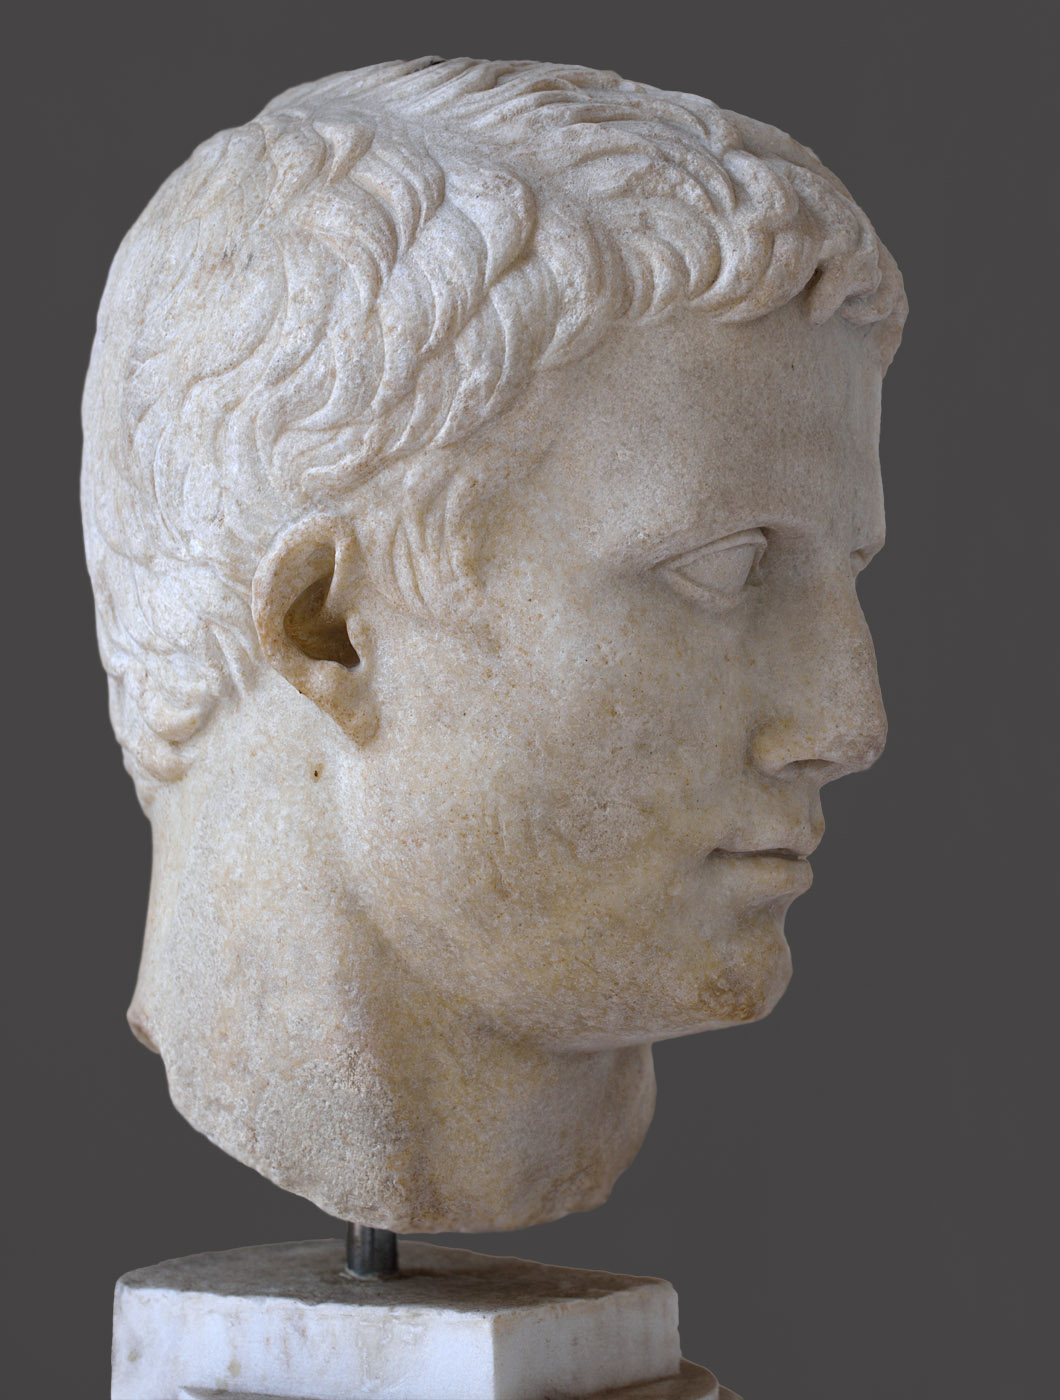 August (portrait head of Octavian before he was appointed the title of Augustus). Marble. Shortly before 27 BCE. Inv. No. 519691. Rome, Roman National Museum, Baths of Diocletian, Chiostro piccolo della Certosa